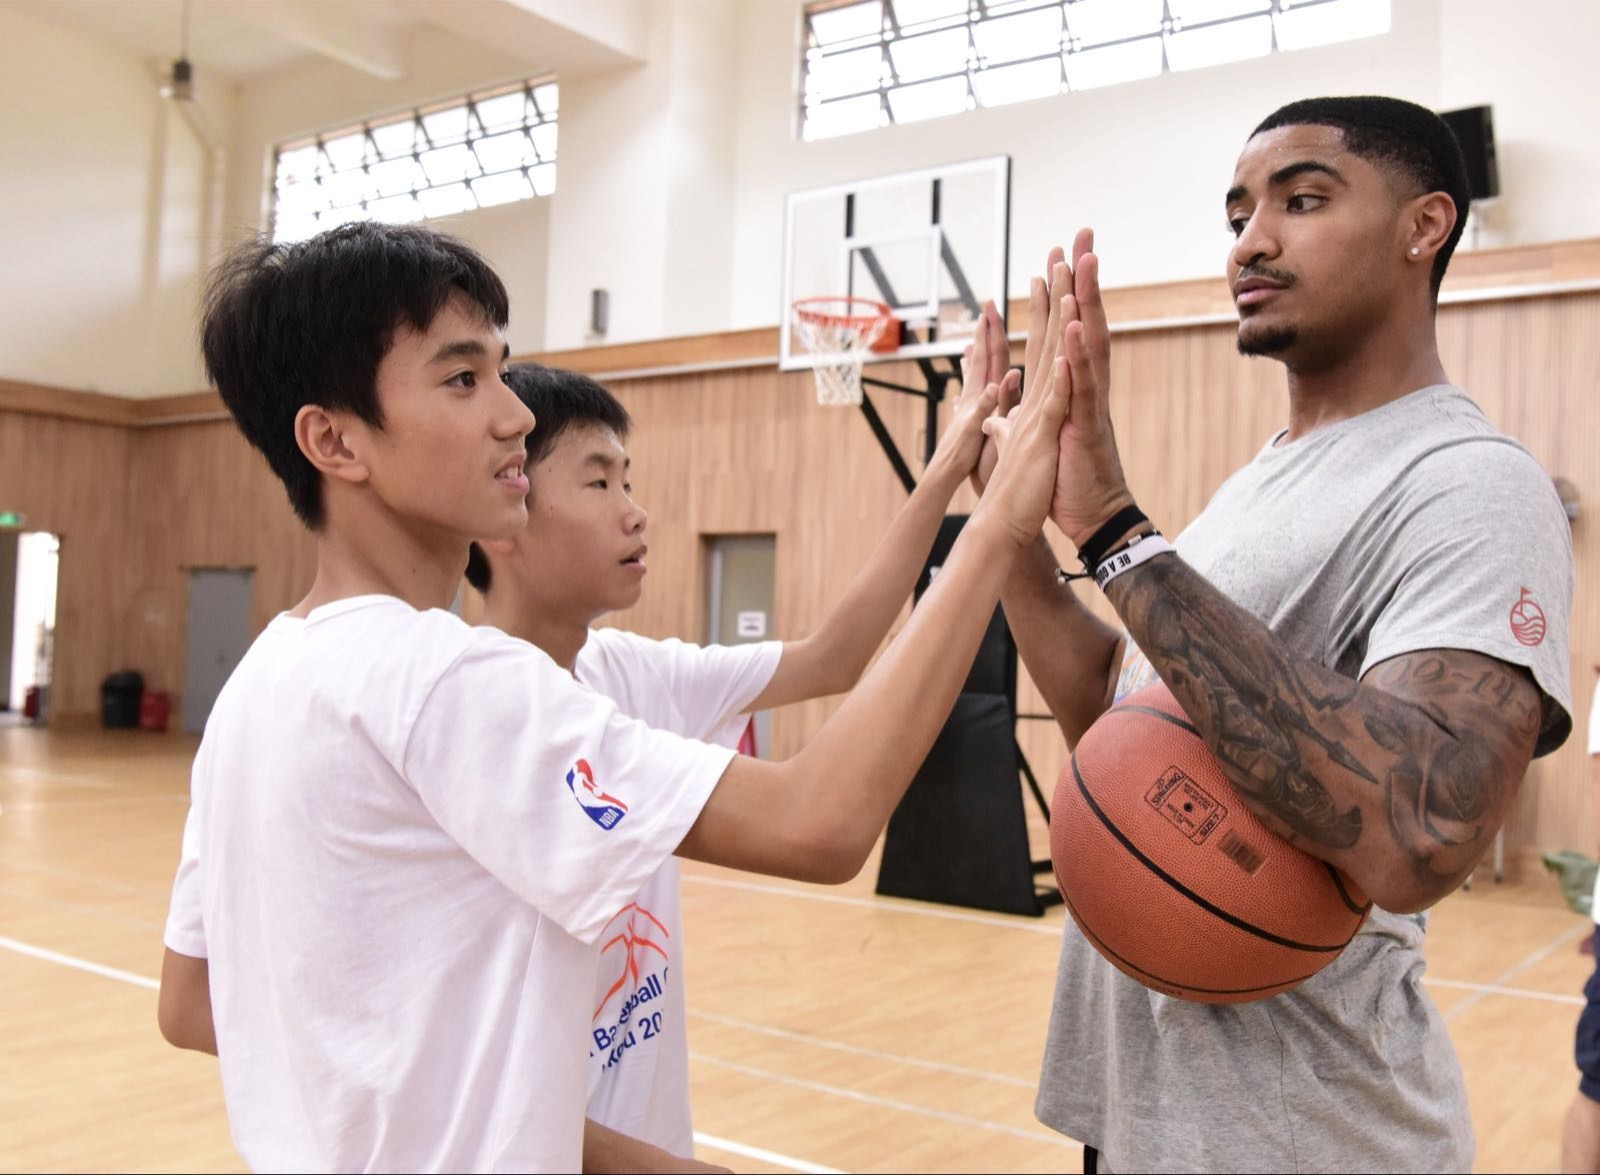 NBA STAR GARY HARRIS THRILLS LOCAL KIDS AT BASKETBALL CAMP IN HAINAN, CHINA 4